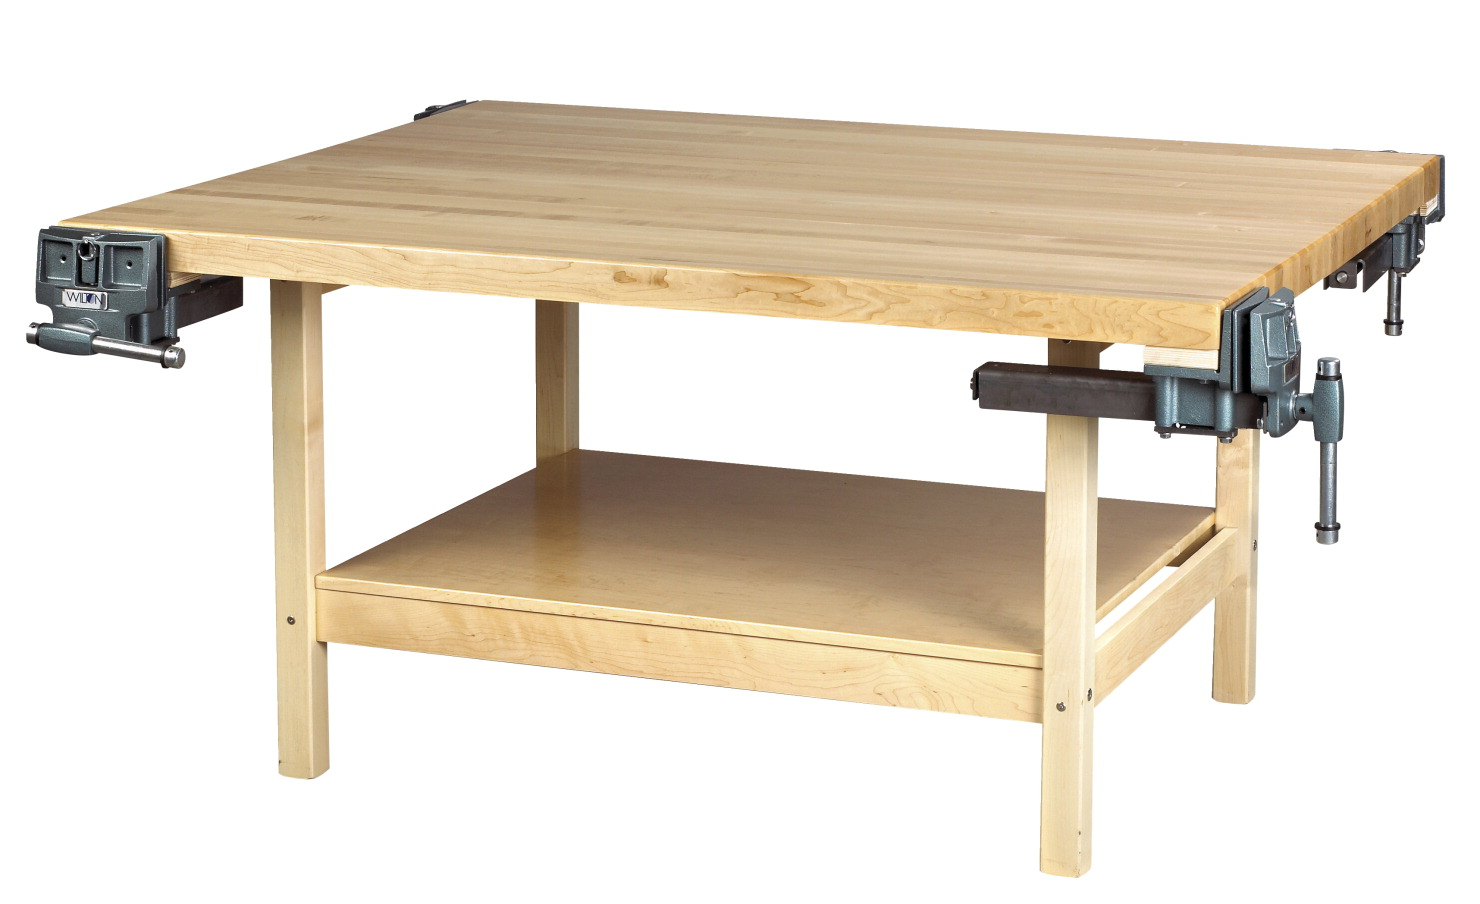 Diversified Woodcrafts 4 Vice Workbench, 64 x 54 x 31-1/4 Inches, Maple